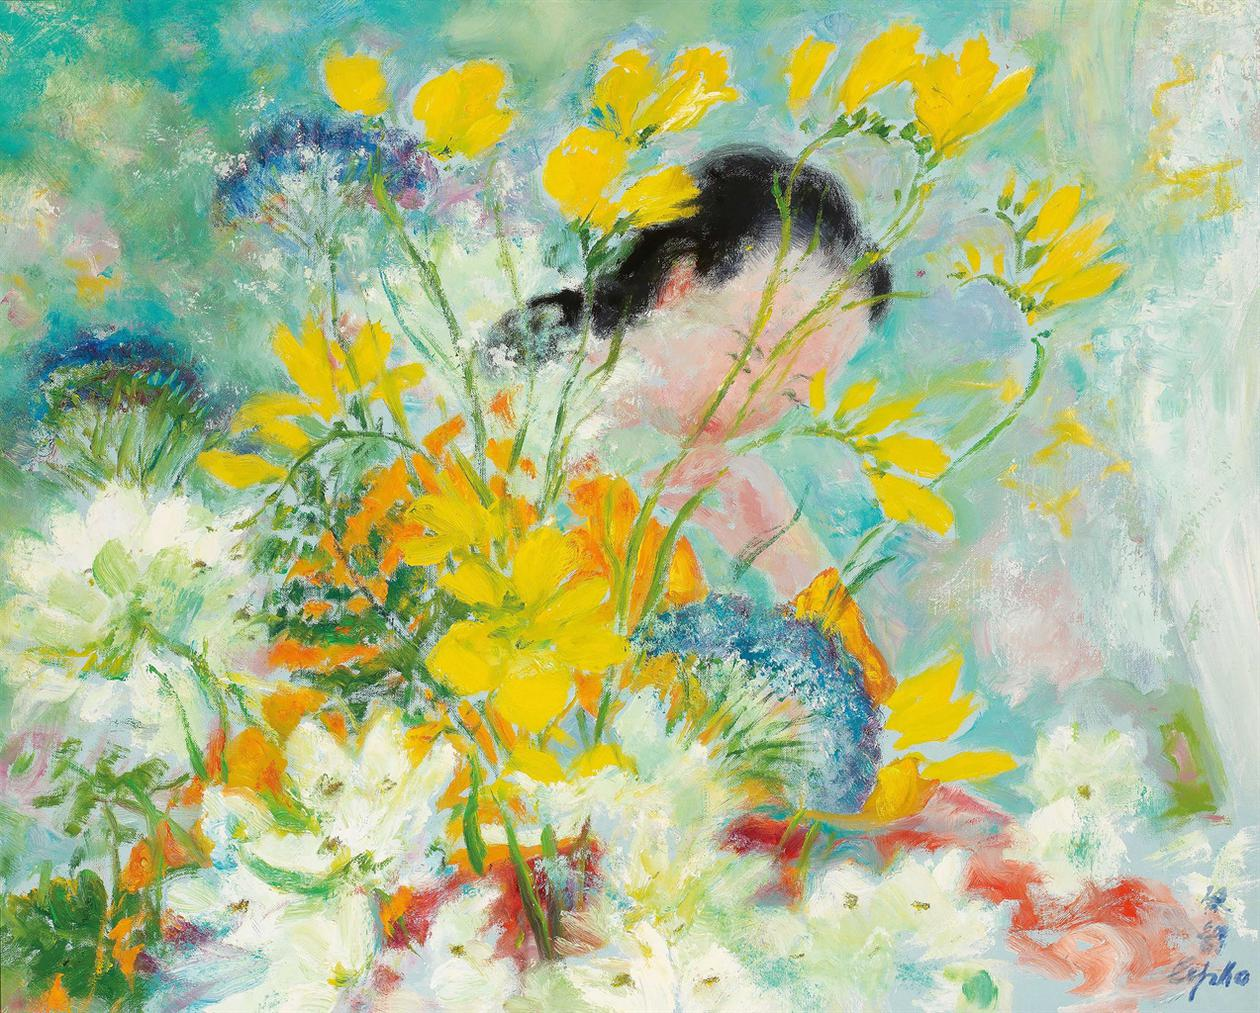 Le Pho-Femme Aux Fleurs Jaune (Woman With Yellow Flowers)-